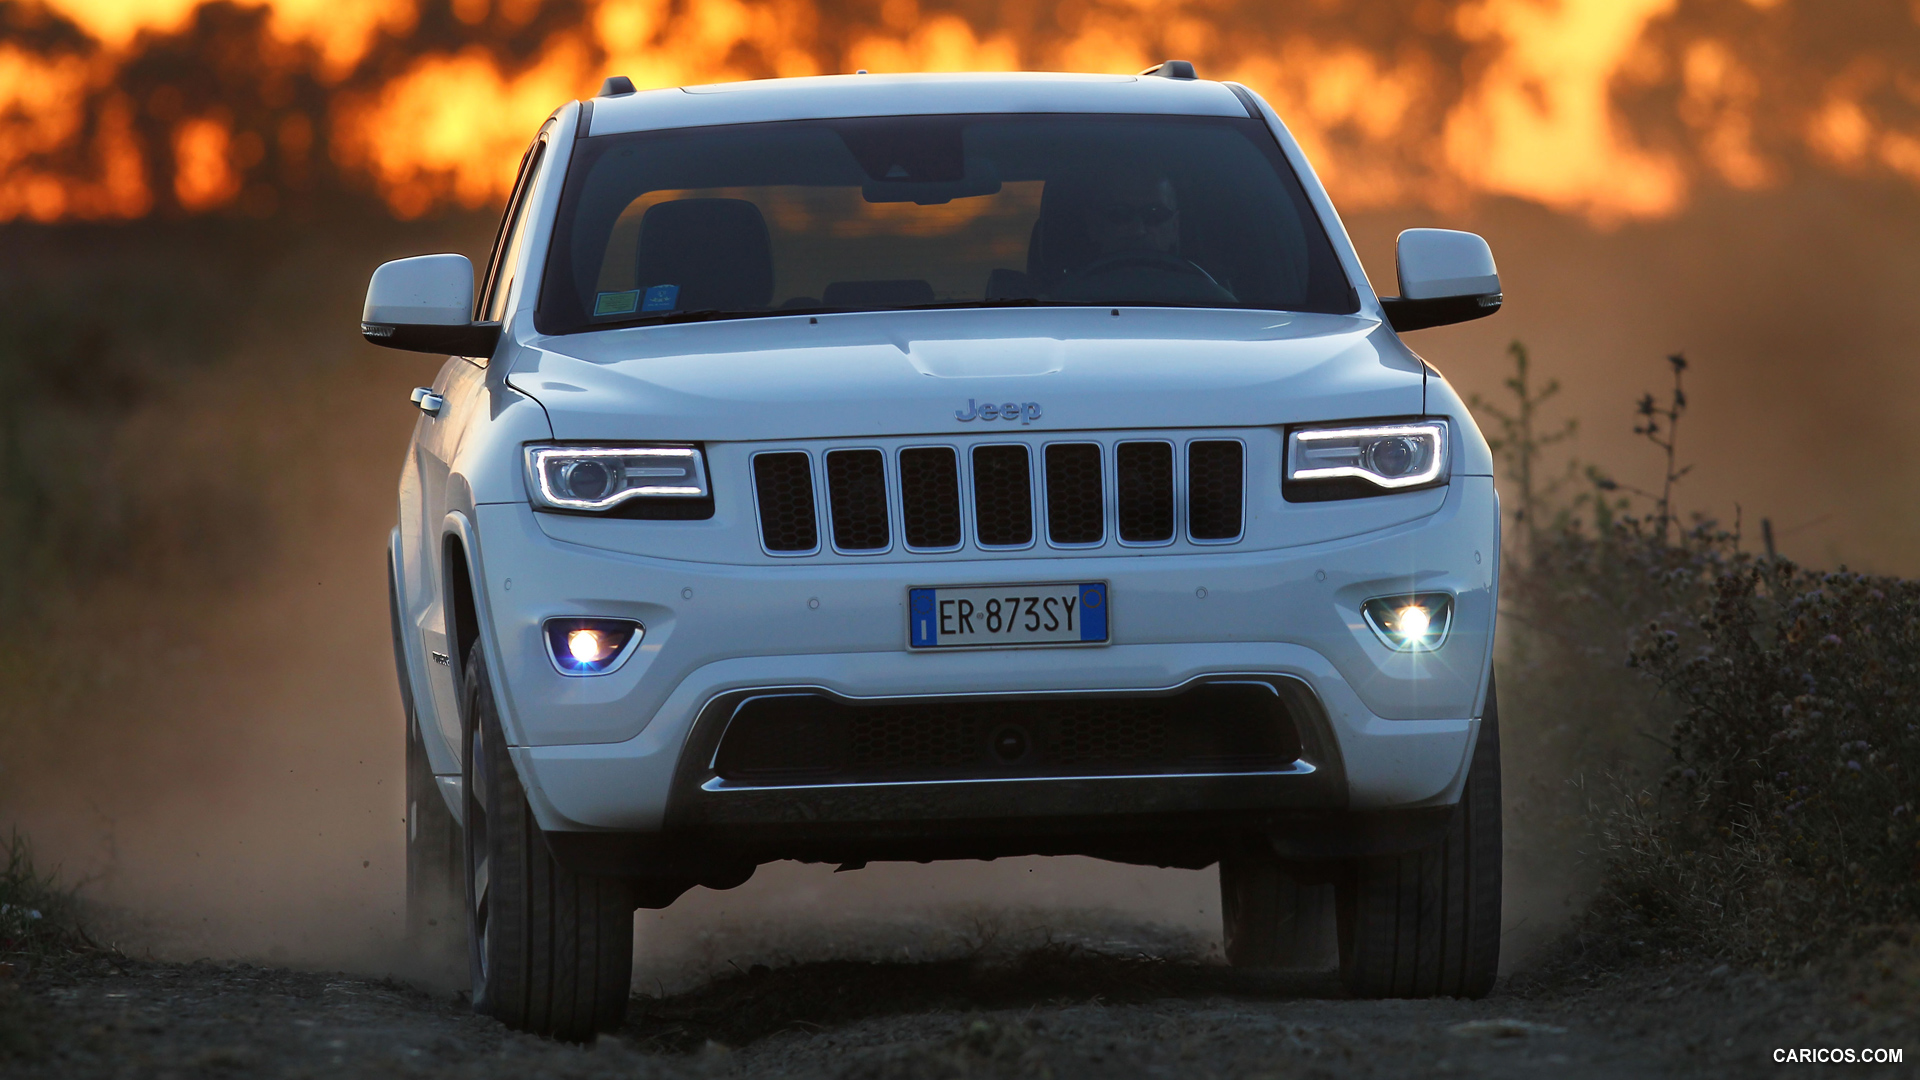 2014 Jeep Grand Cherokee EU Version Overland   Front HD 1920x1080